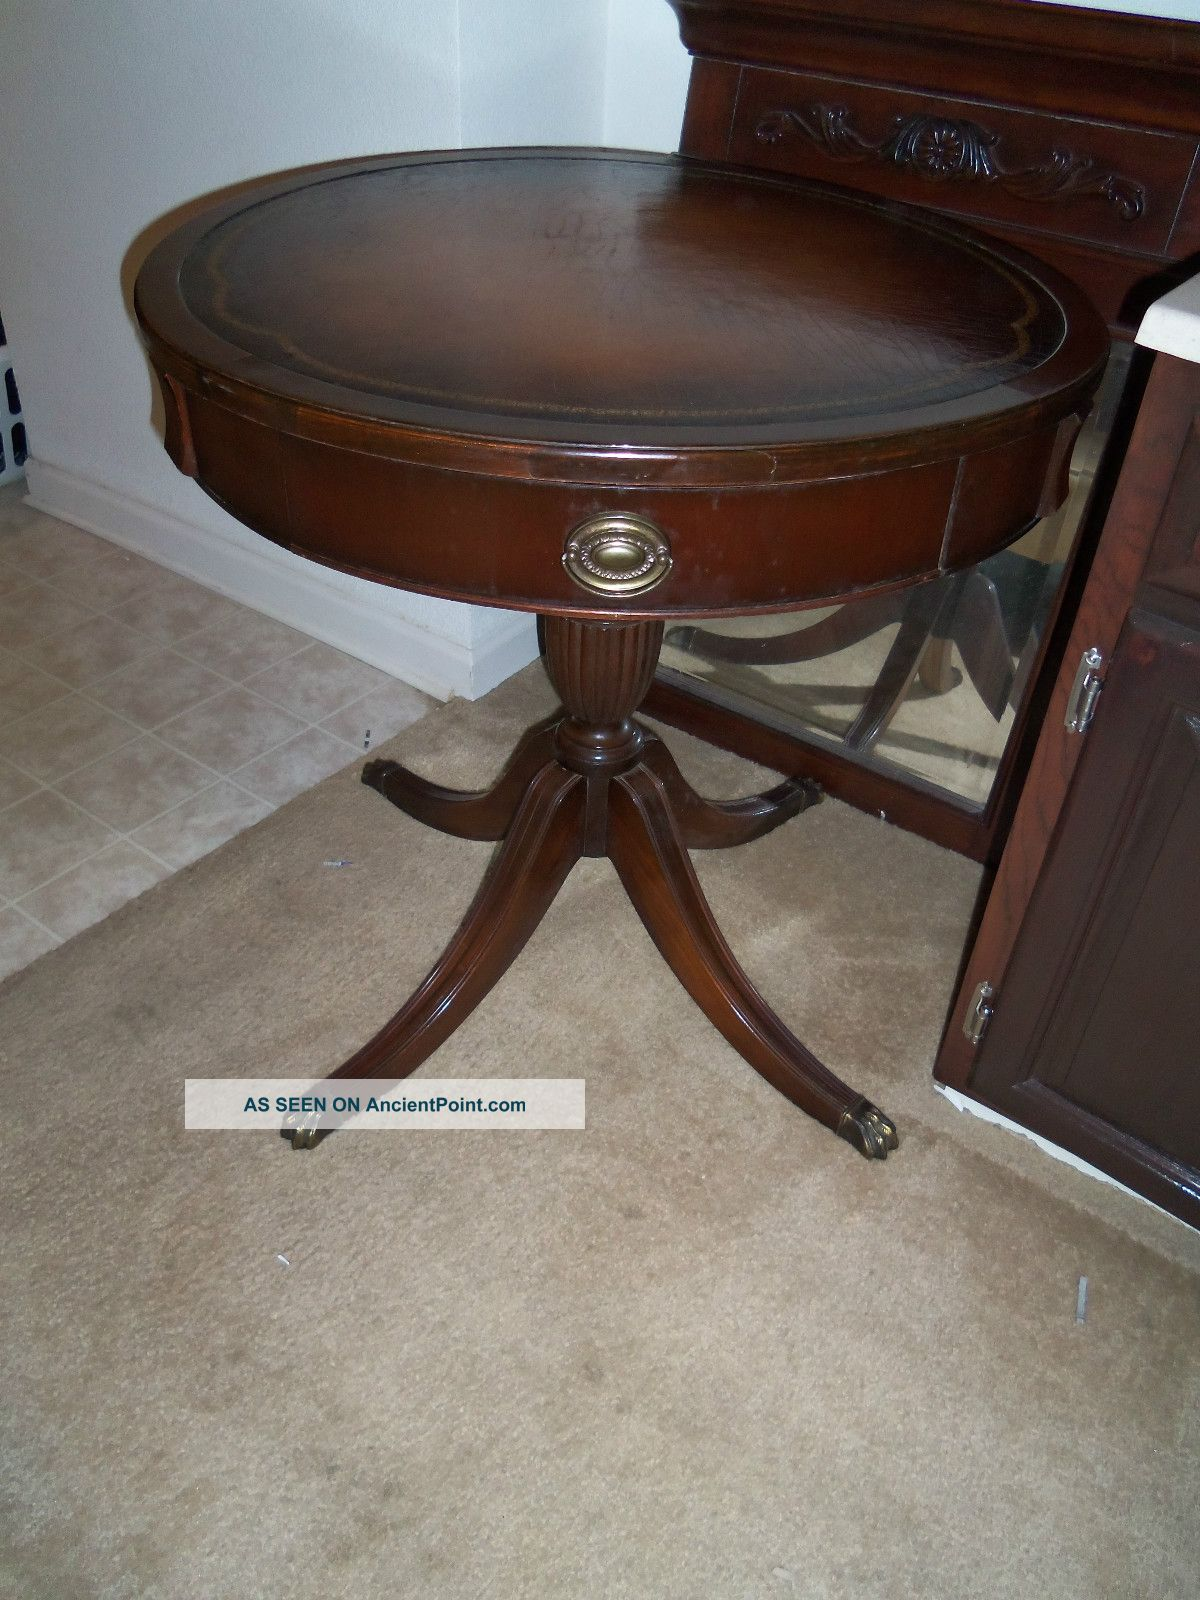 Amazing Antique Drum Table with Claw Feet 1200 x 1600 · 280 kB · jpeg